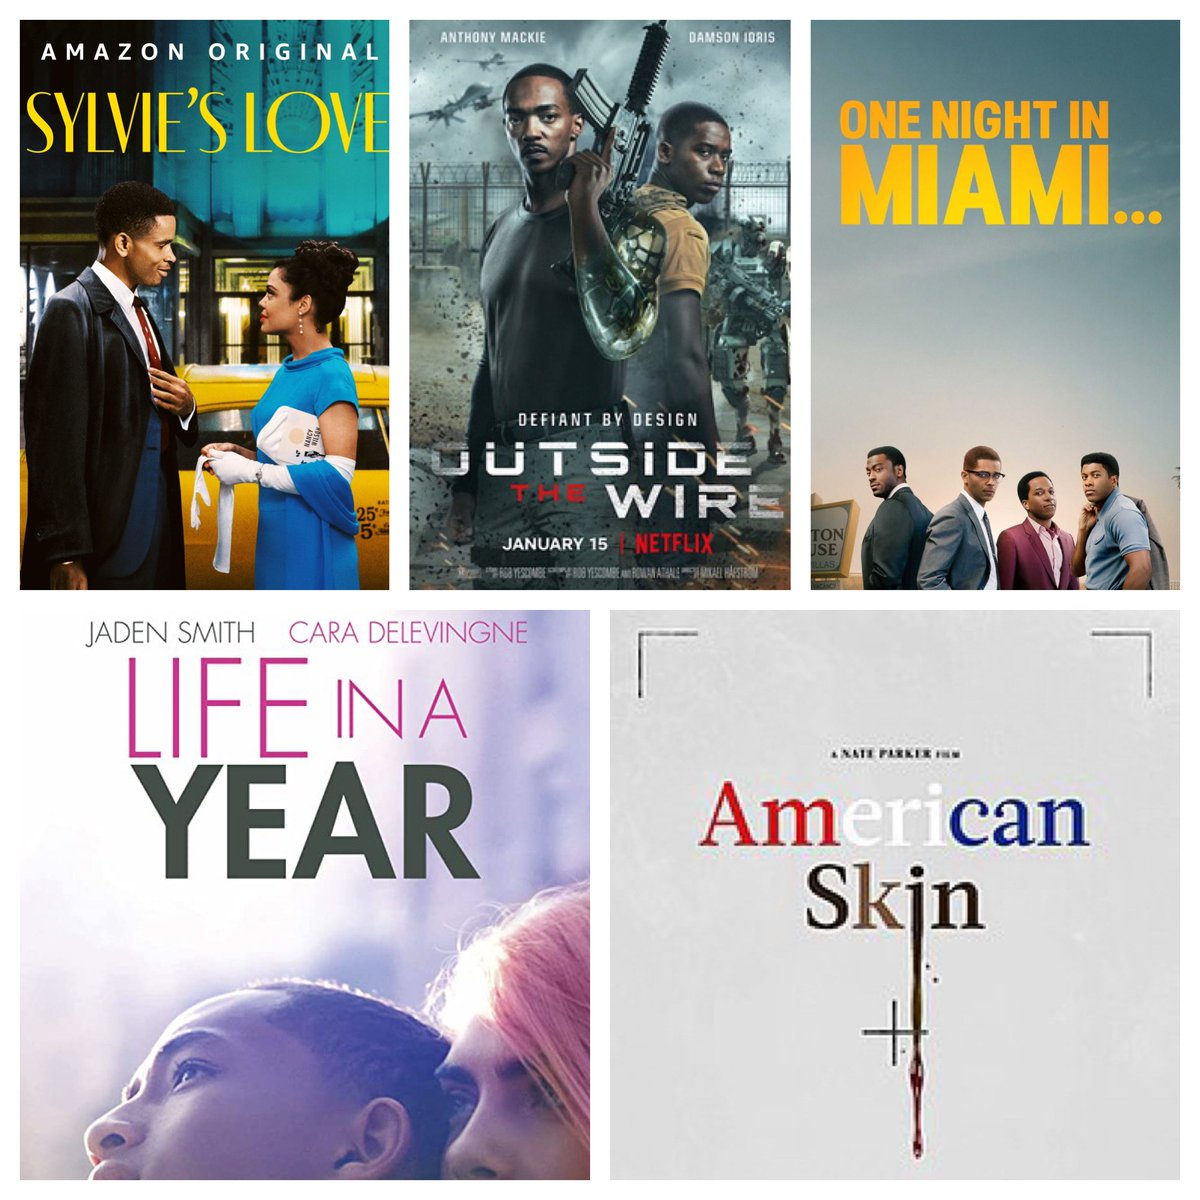 Every single one of these films is worth your time. Let's also applaud the amount of Black leads we're getting and it's only the third week of the year. Anyways, watch and enjoy. Ok bye! #SylviesLove #OutsideTheWire #OneNightInMiami #LifeInAYear #AmericanSkin